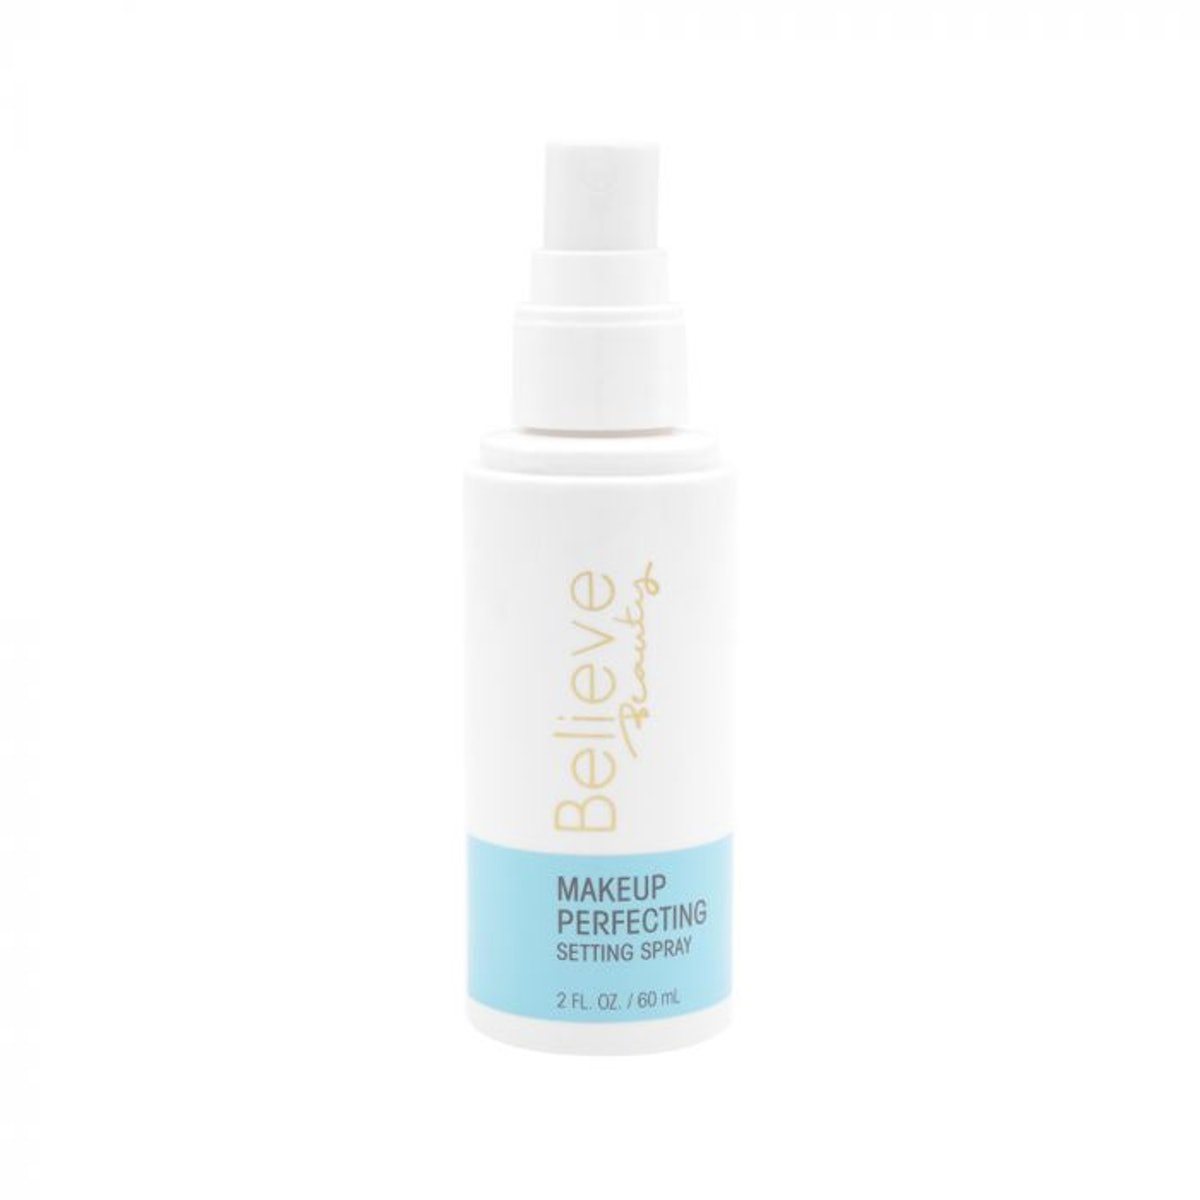 Believe Beauty Make Up Perfecting Setting Spray